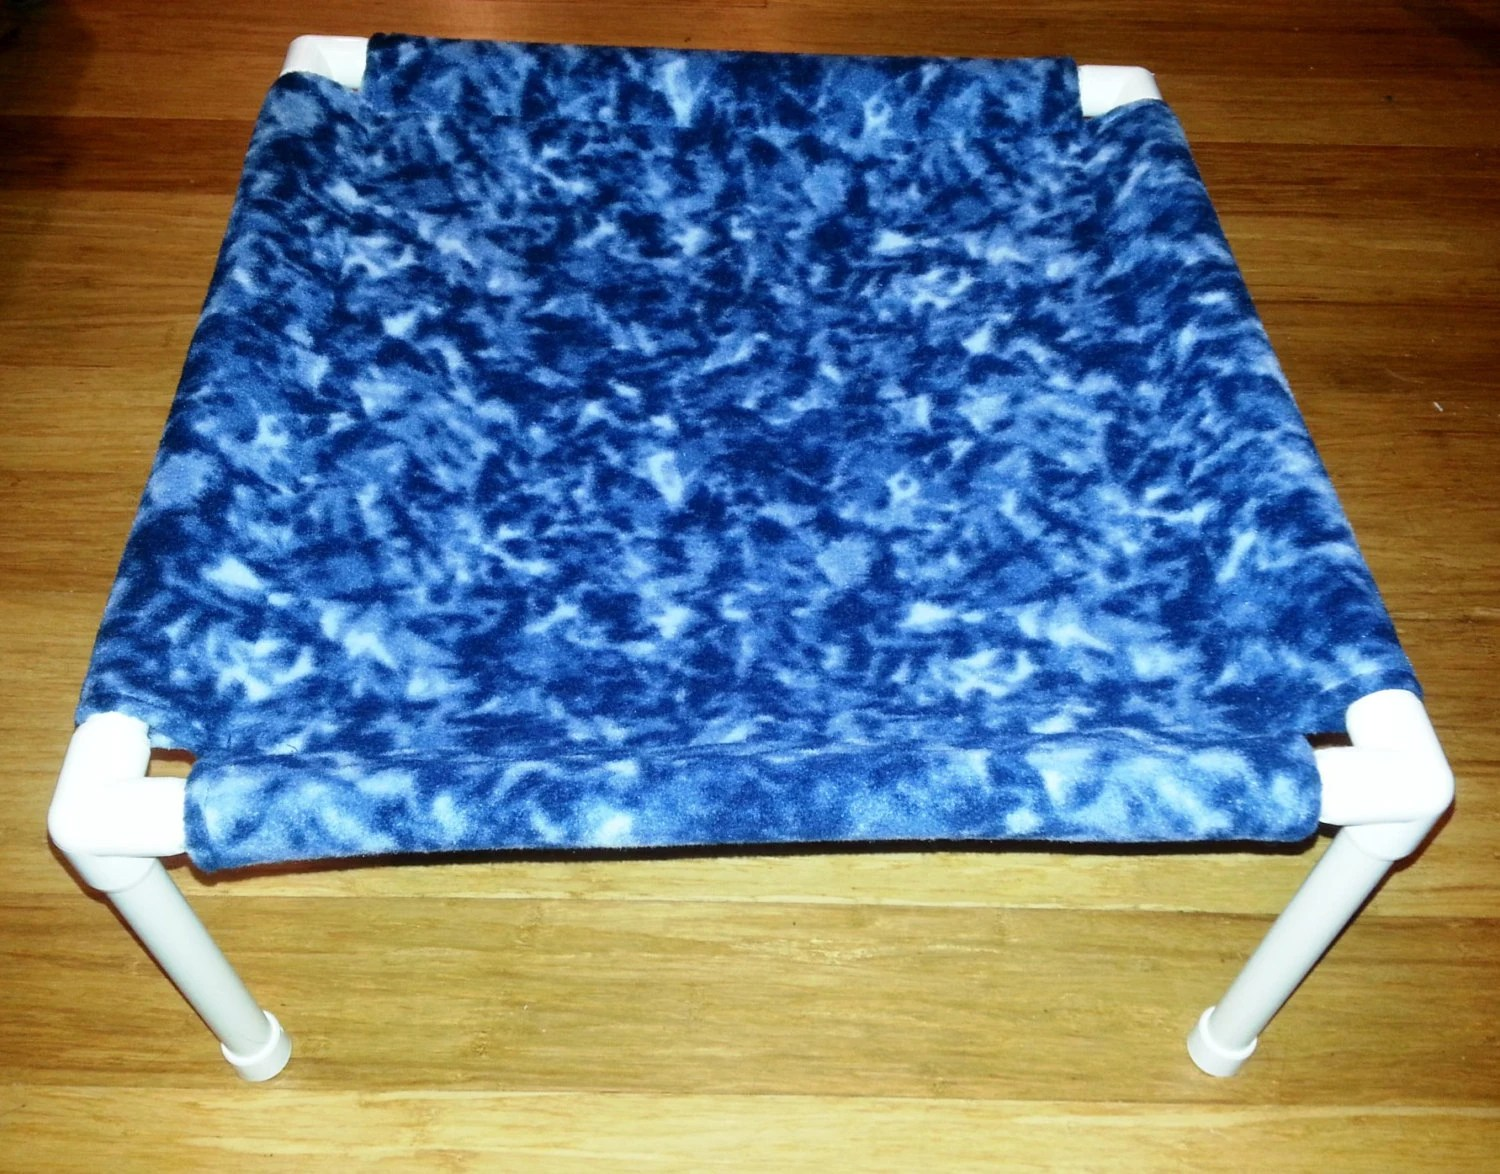 The Pet Hammock Fleece Fabric Blue Tie Dye Pattern